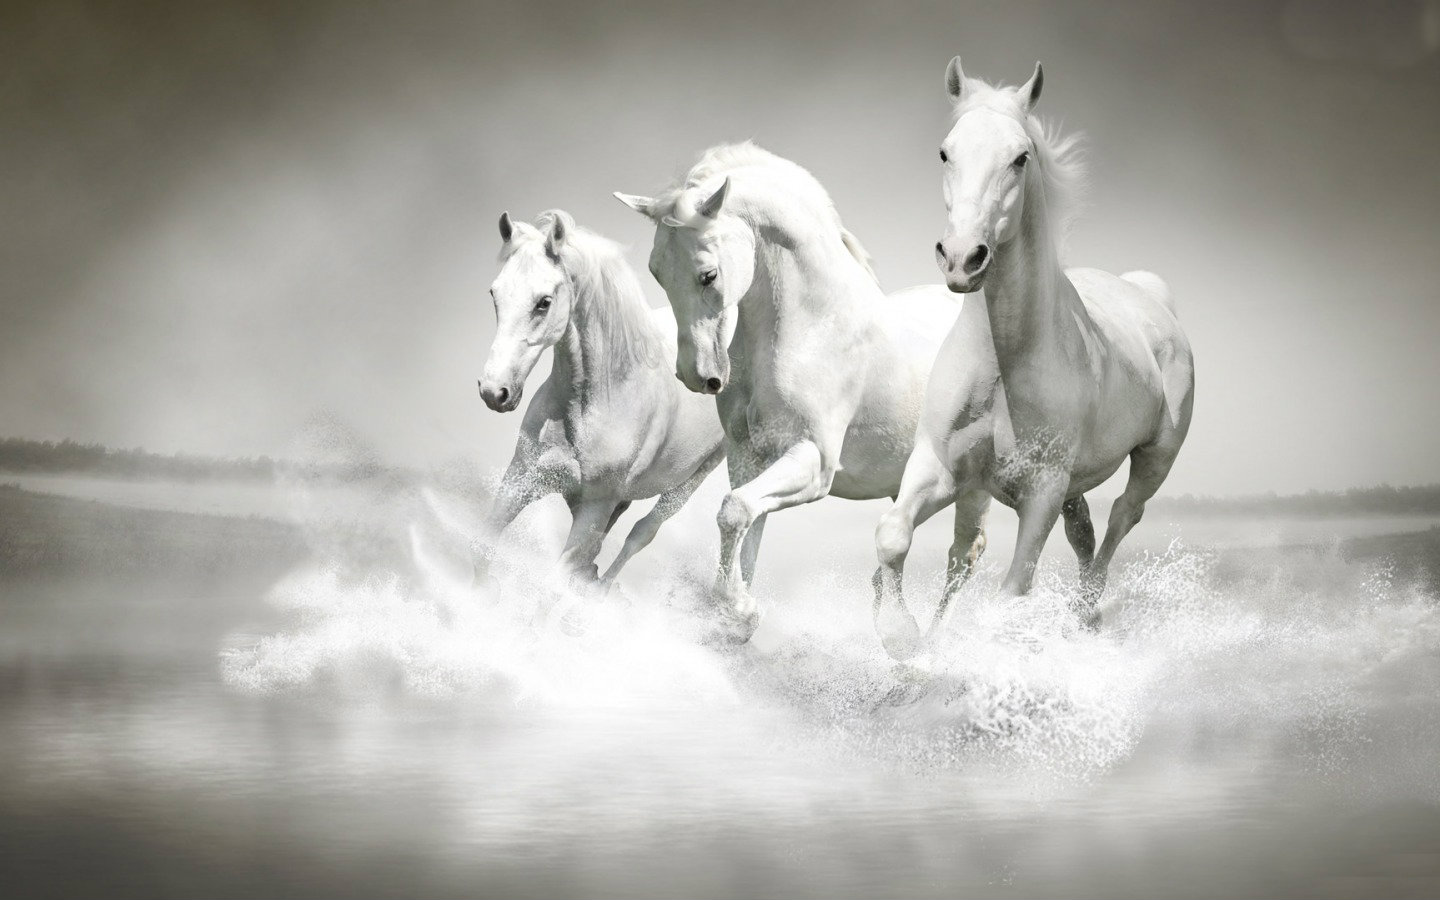 Horses - Animals Wallpaper (34414323) - Fanpop